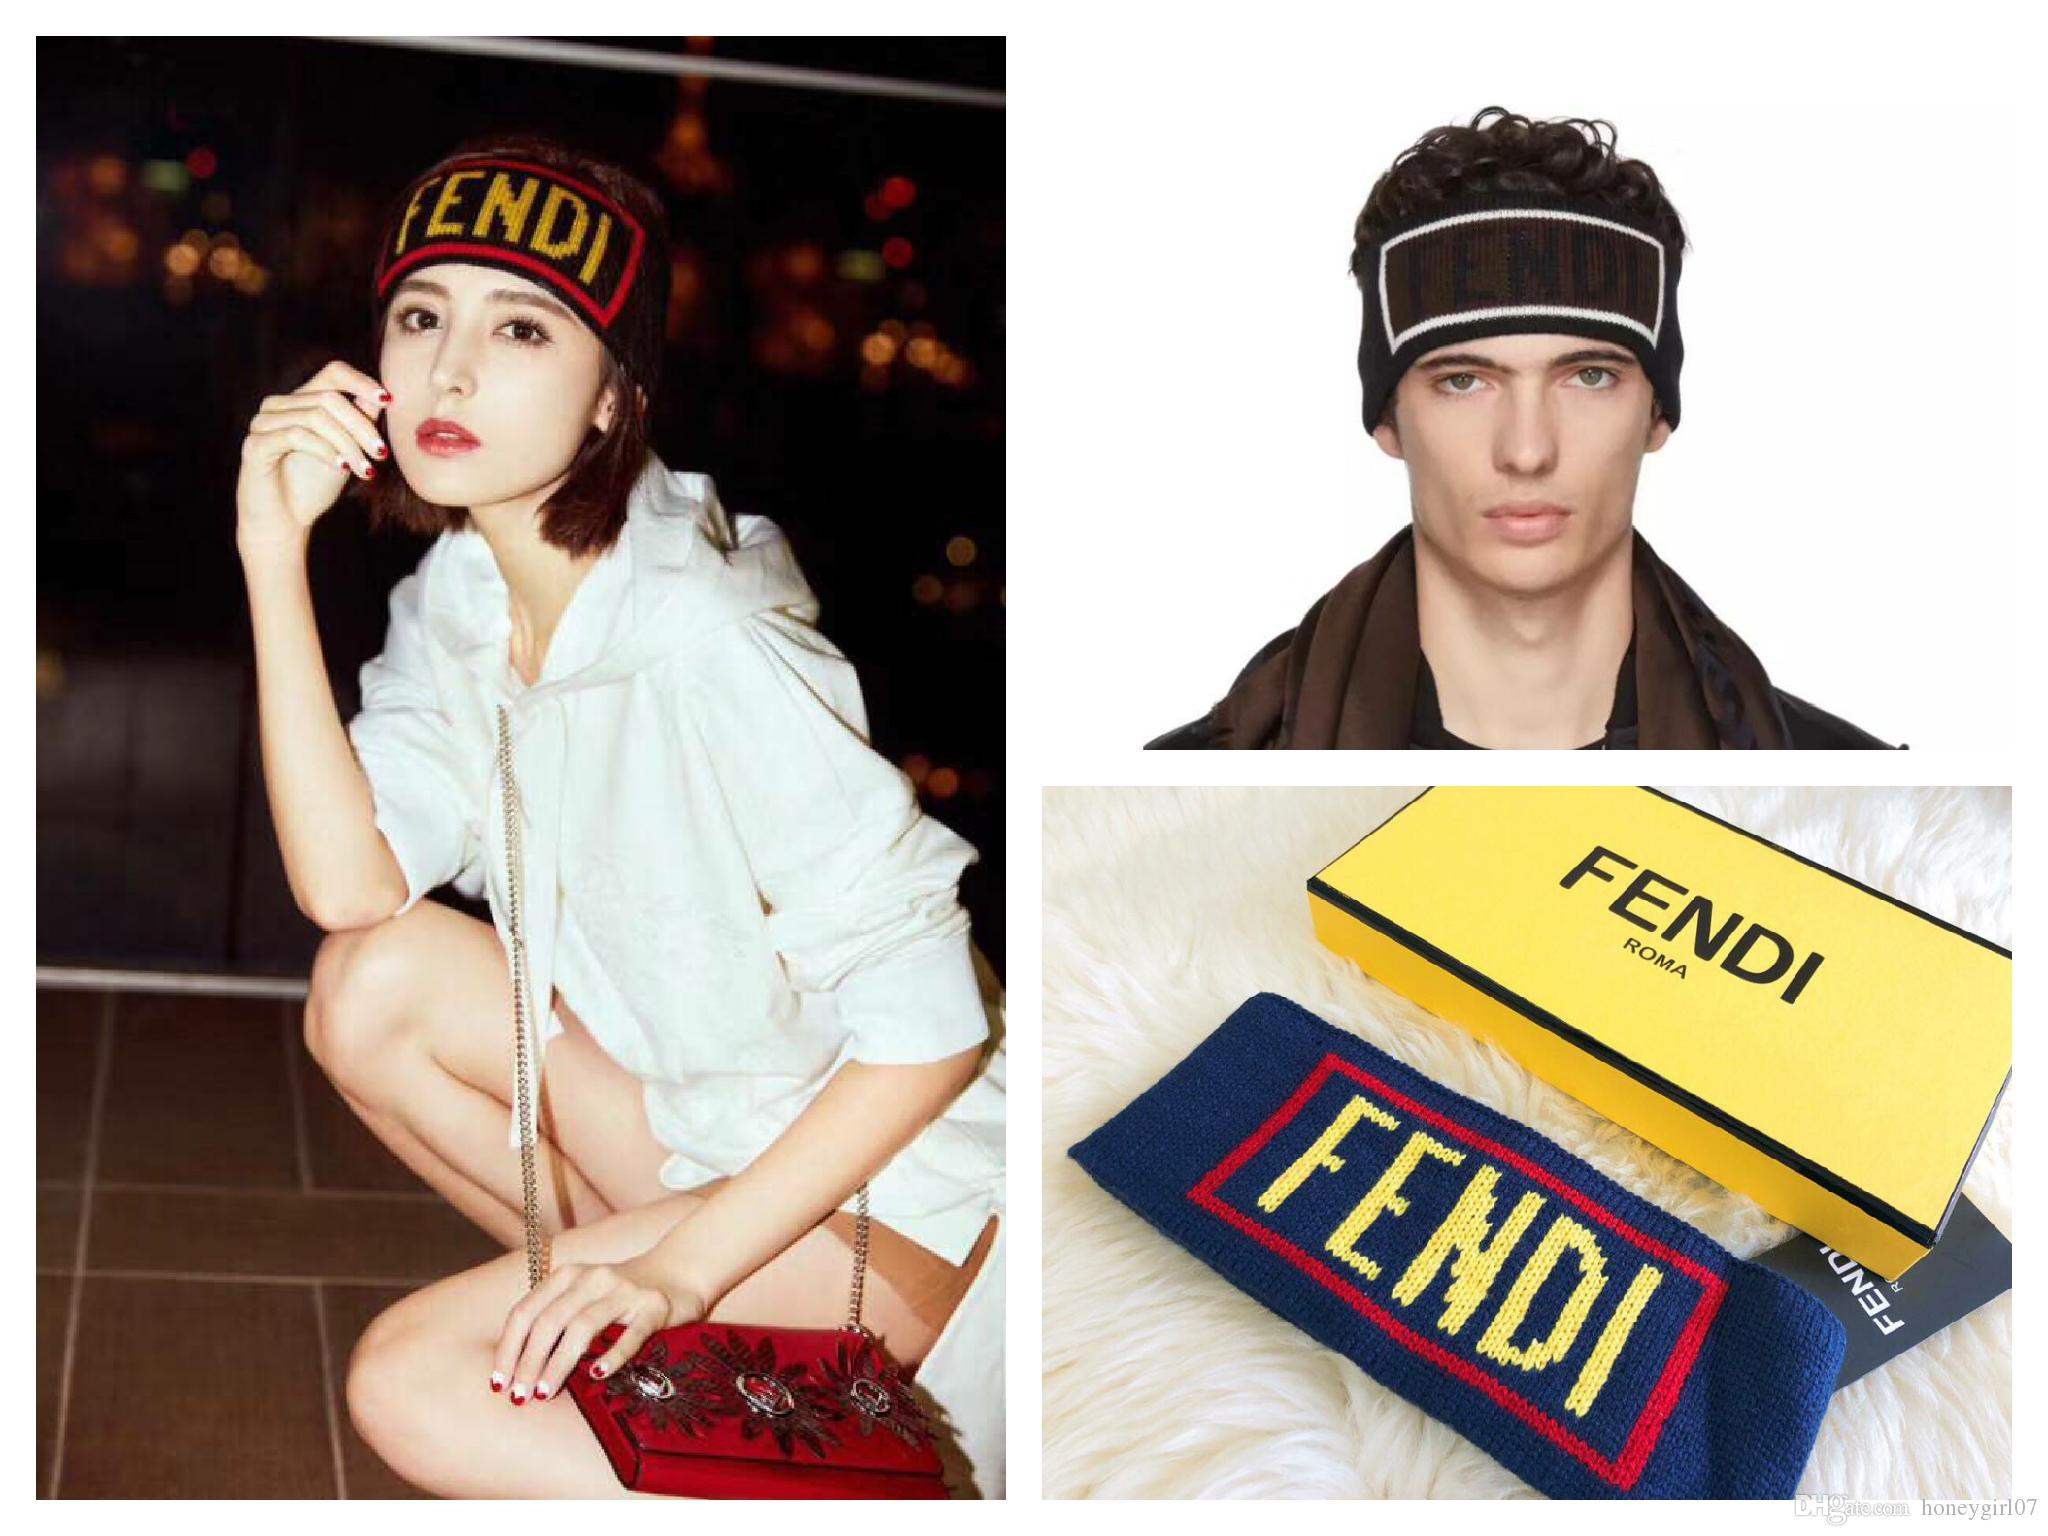 In Stock Lovers Luxury Brand Headband For Men And Women F Brand Headband  Wool Letter Hair Band With Tag For Best Gift Hair Decoration Decorative  Hair ... b39db5288c8